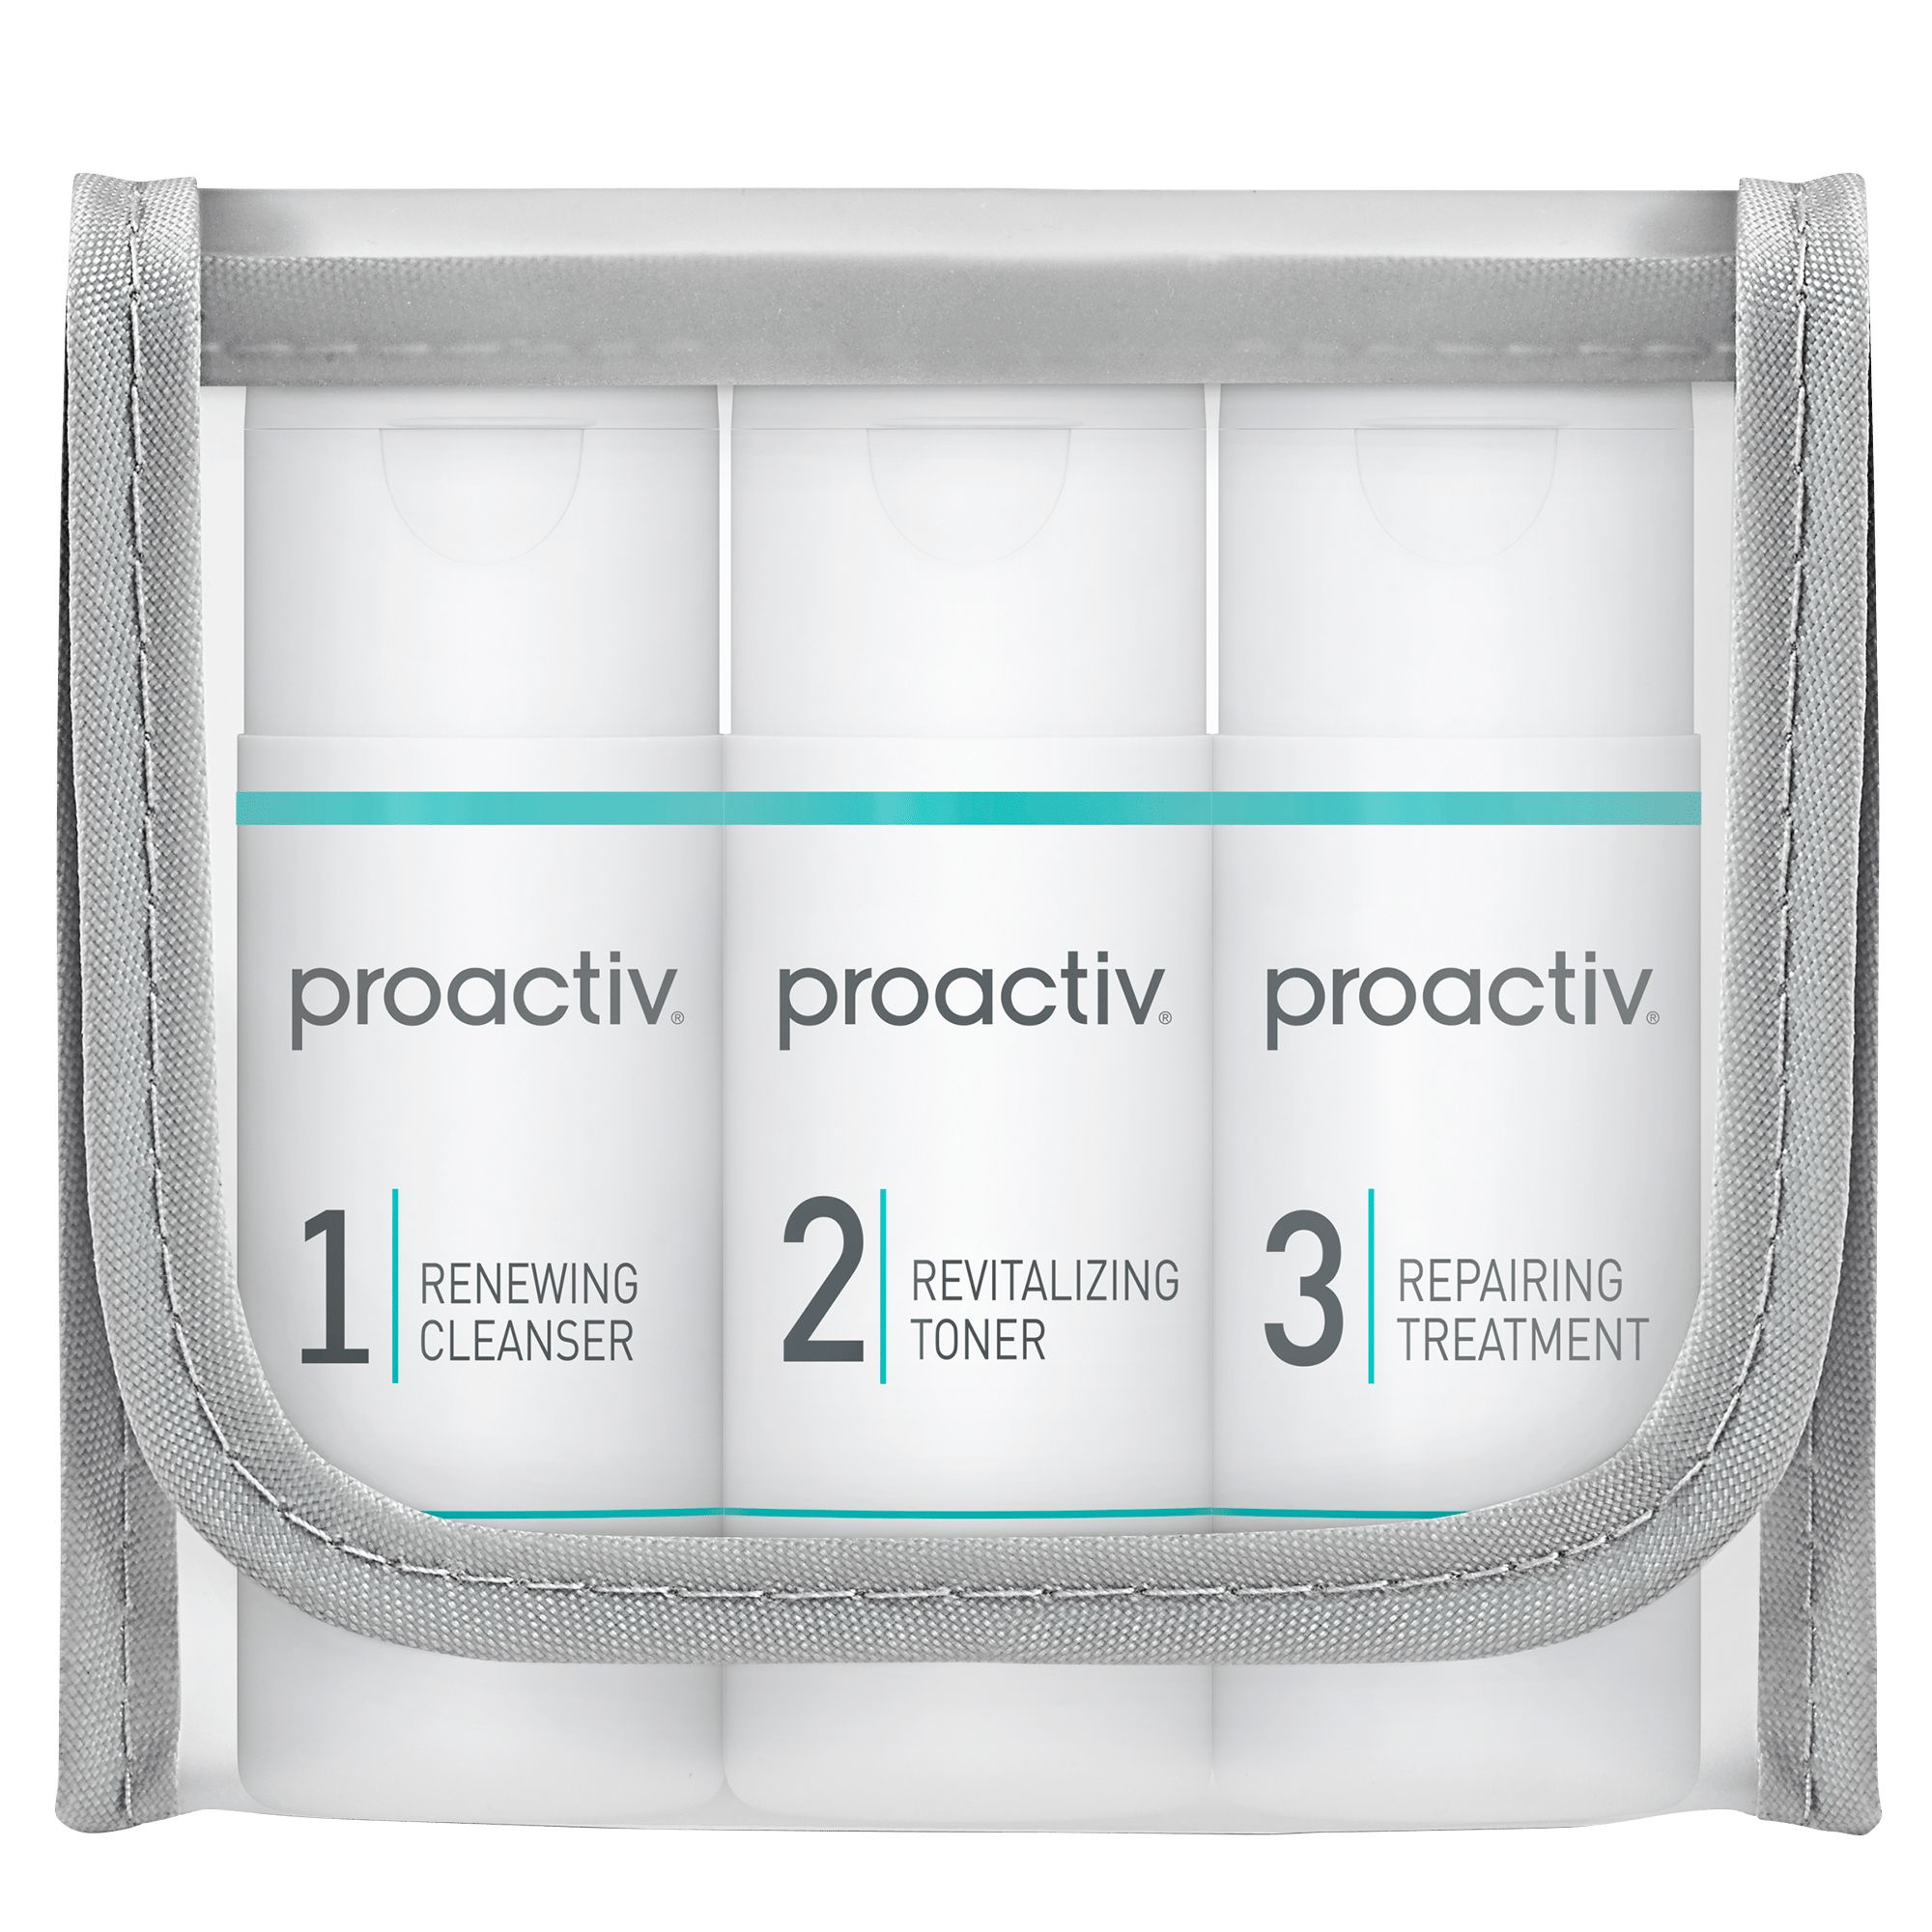 Shop for Proactiv at Ulta Beauty. Merry Monday is here! SHOP NOW   Last day free standard shipping over $